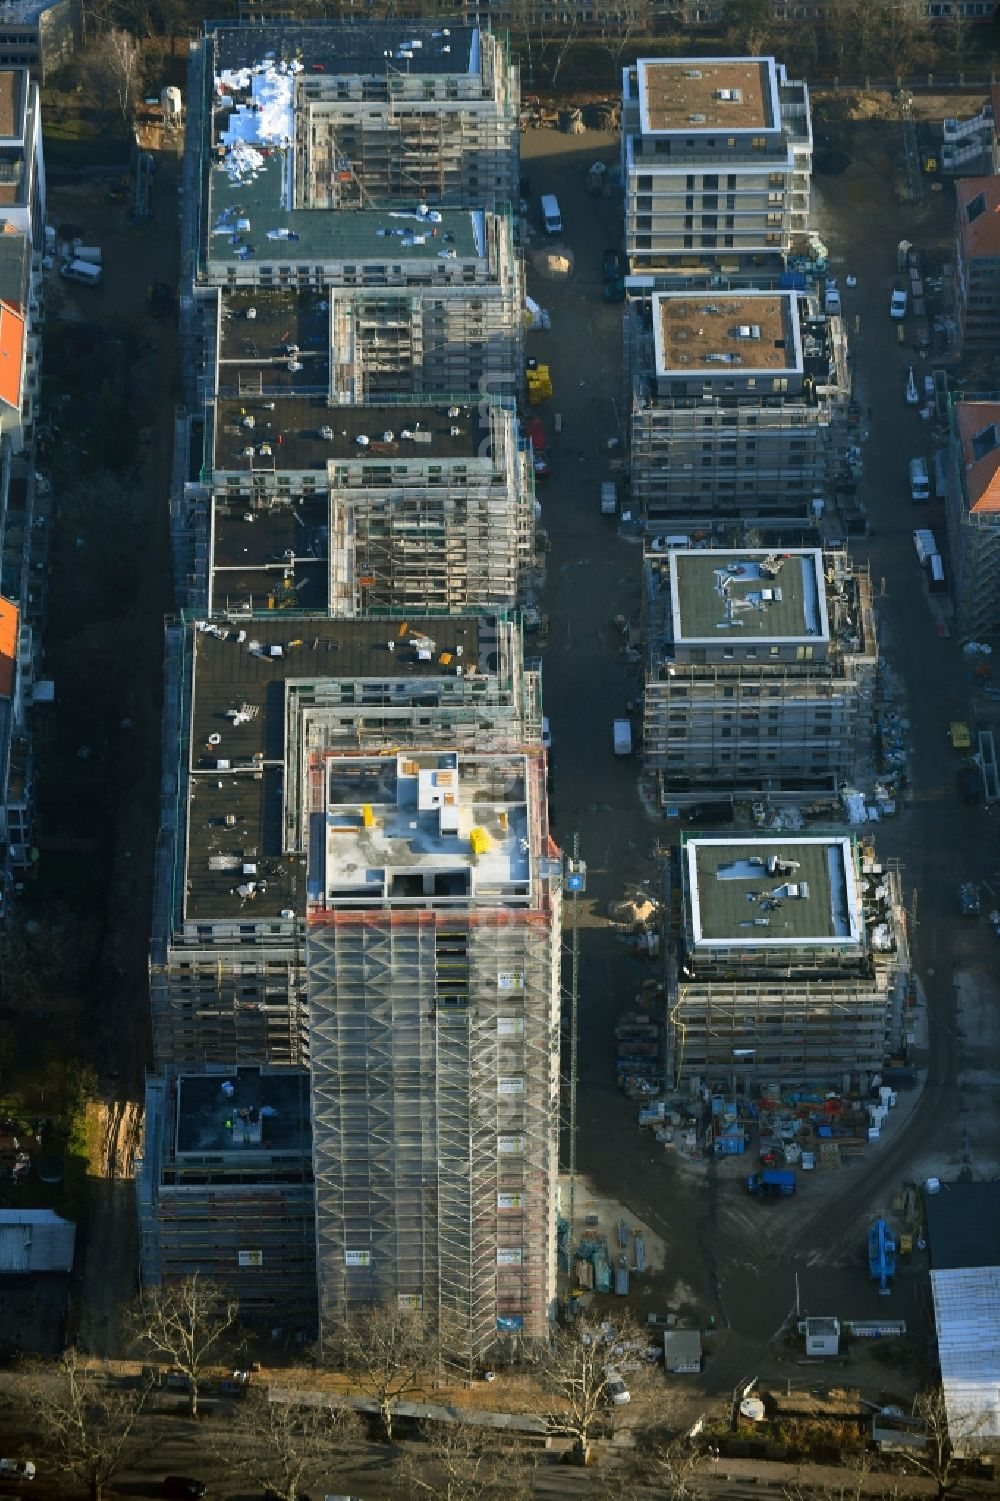 Aerial photograph Berlin - Construction site for new high-rise building complex am Wohnpark St. Marien in the district Neukoelln in Berlin, Germany